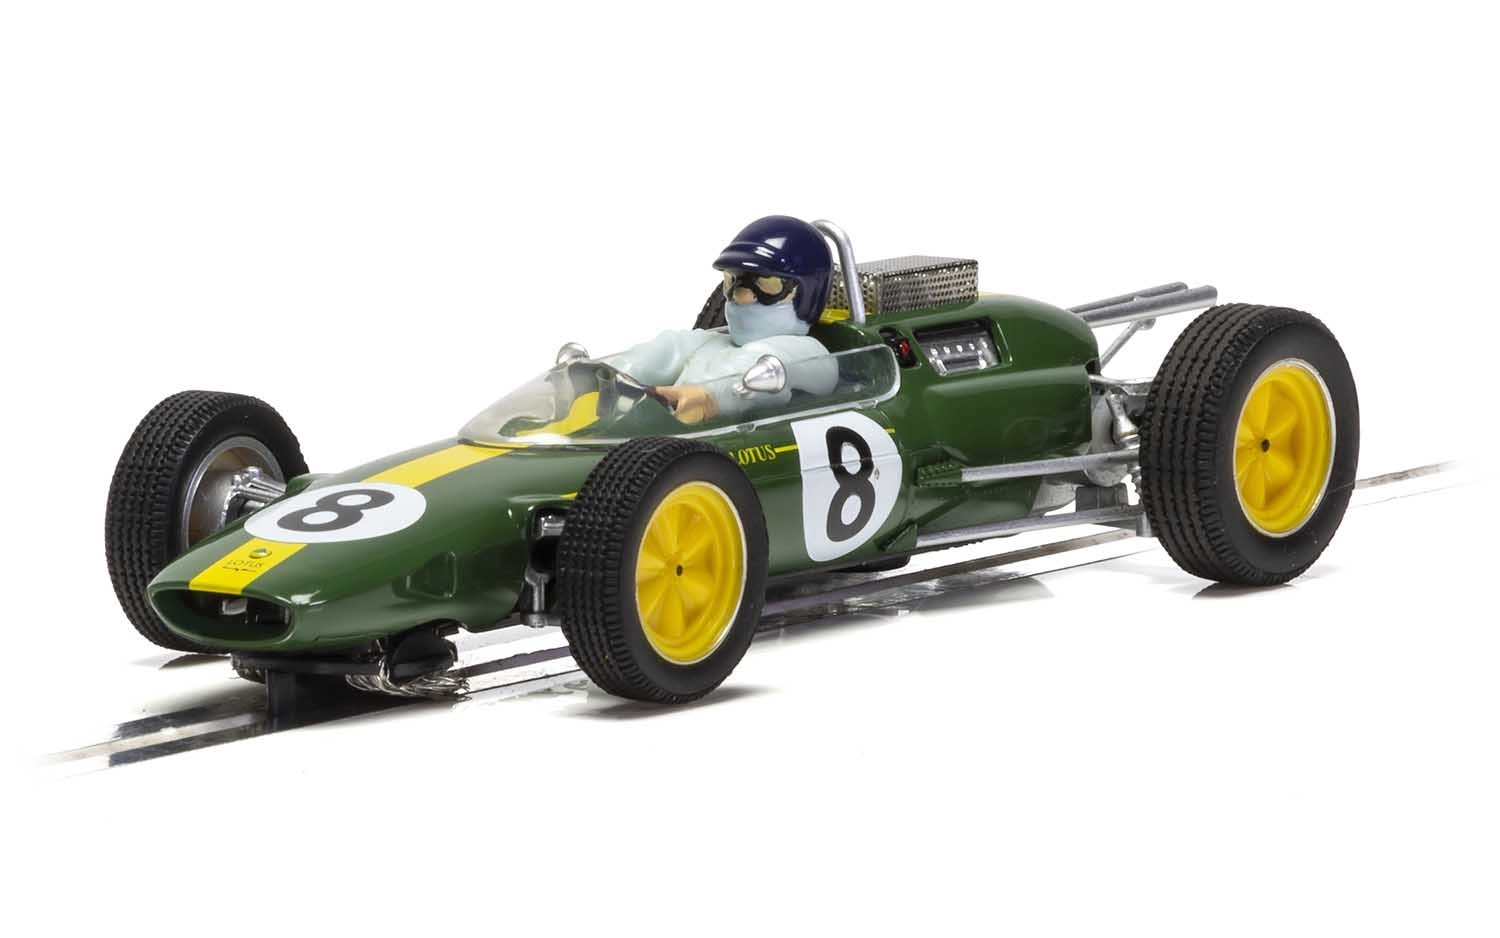 LOTUS 25, JIM CLARK MONZA 1963 FIRST WORLD CHAMPIONSHIP